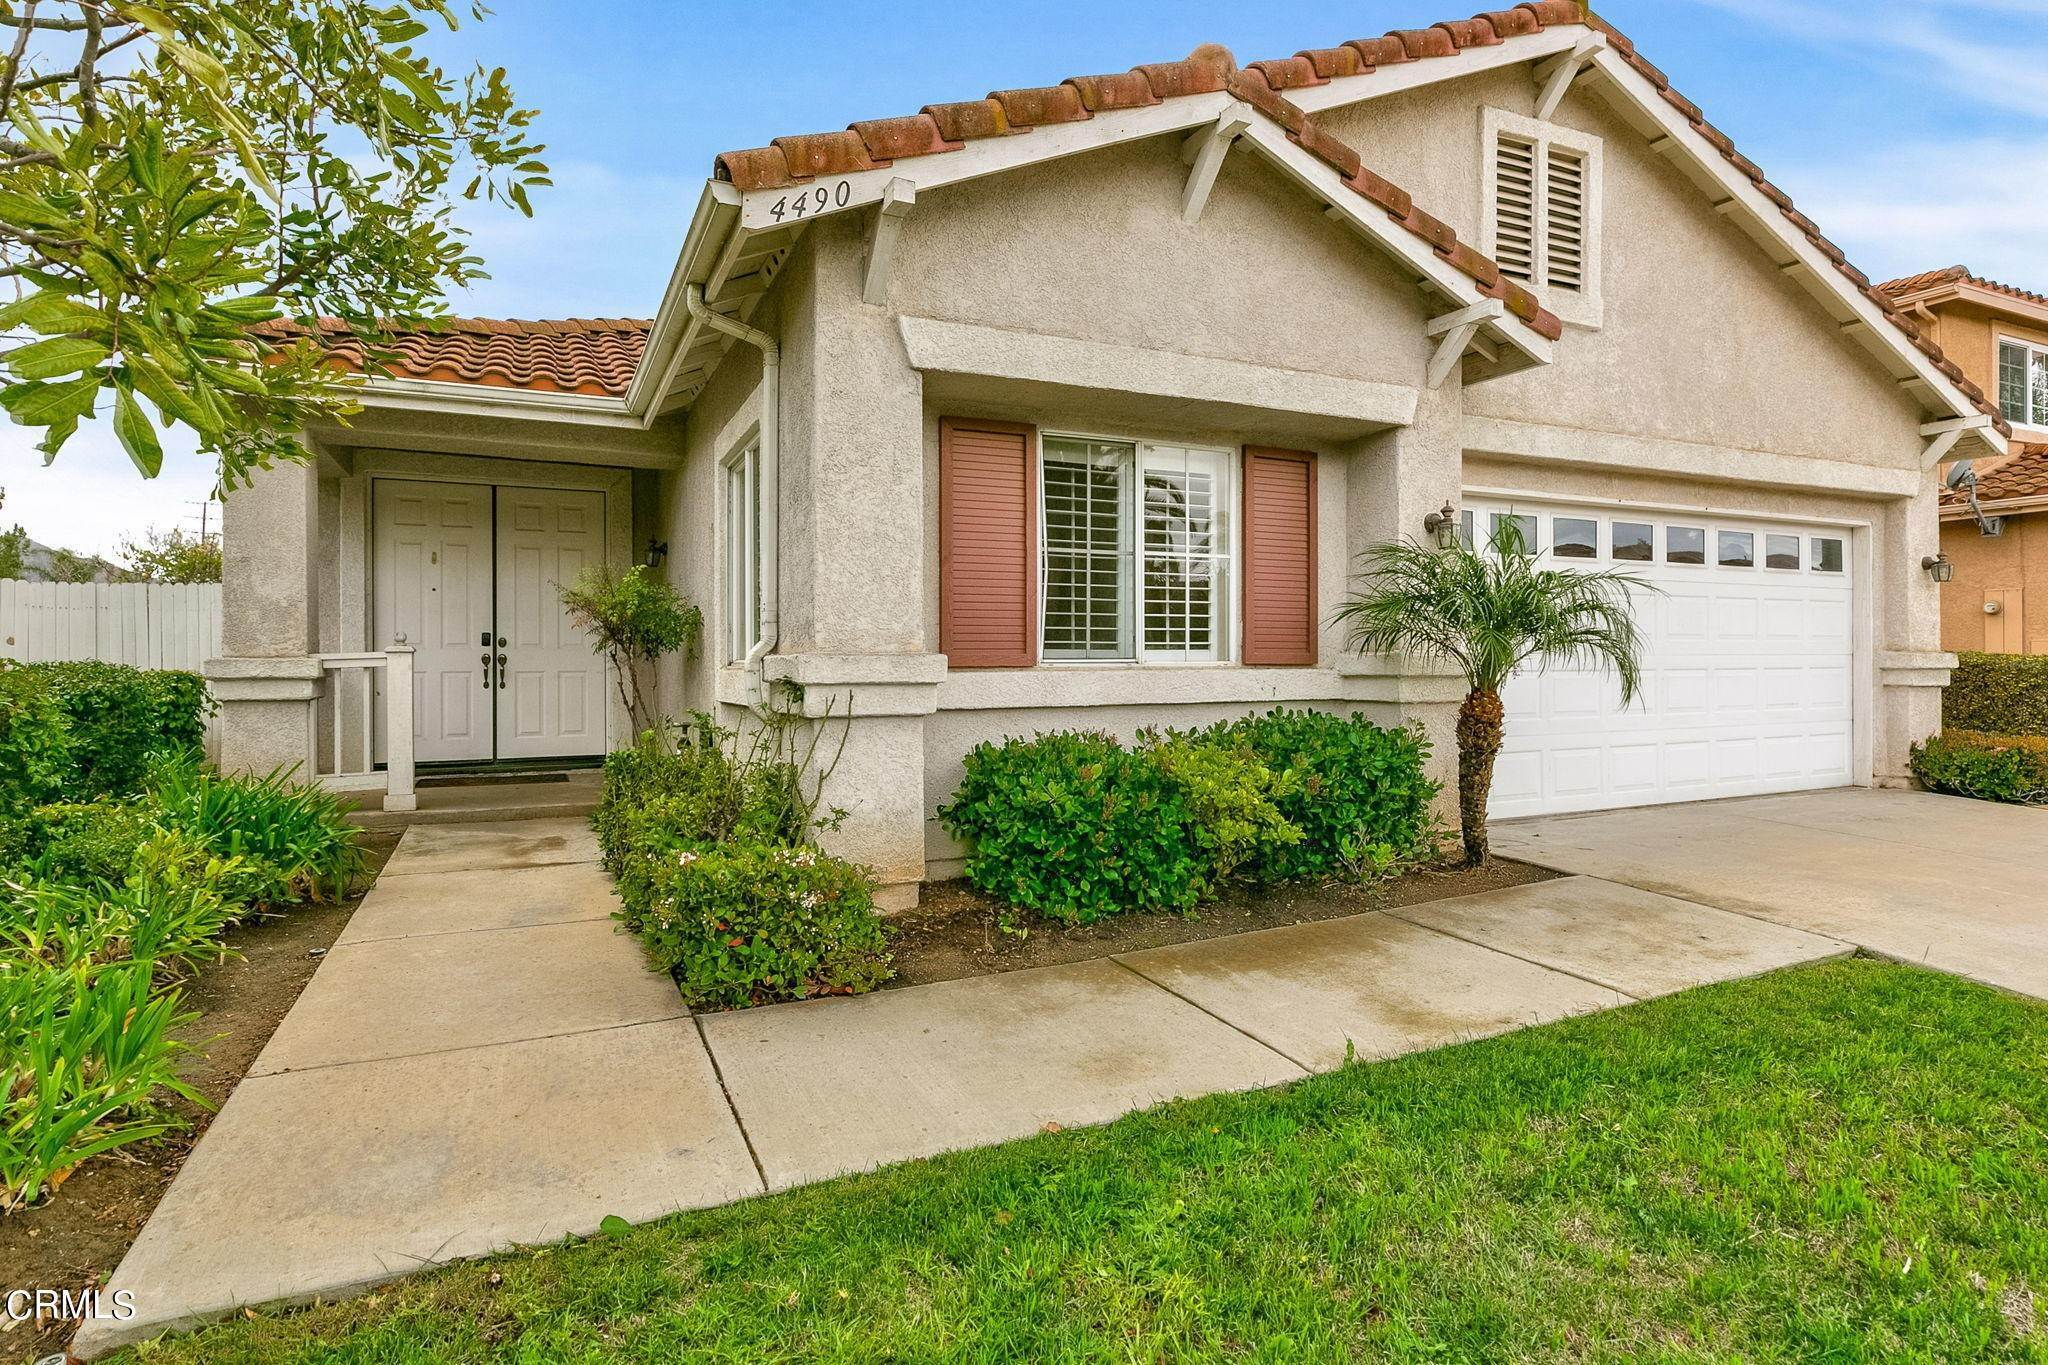 Single Family Homes for Sale at 4490 El Corazon Court Camarillo, California 93012 United States